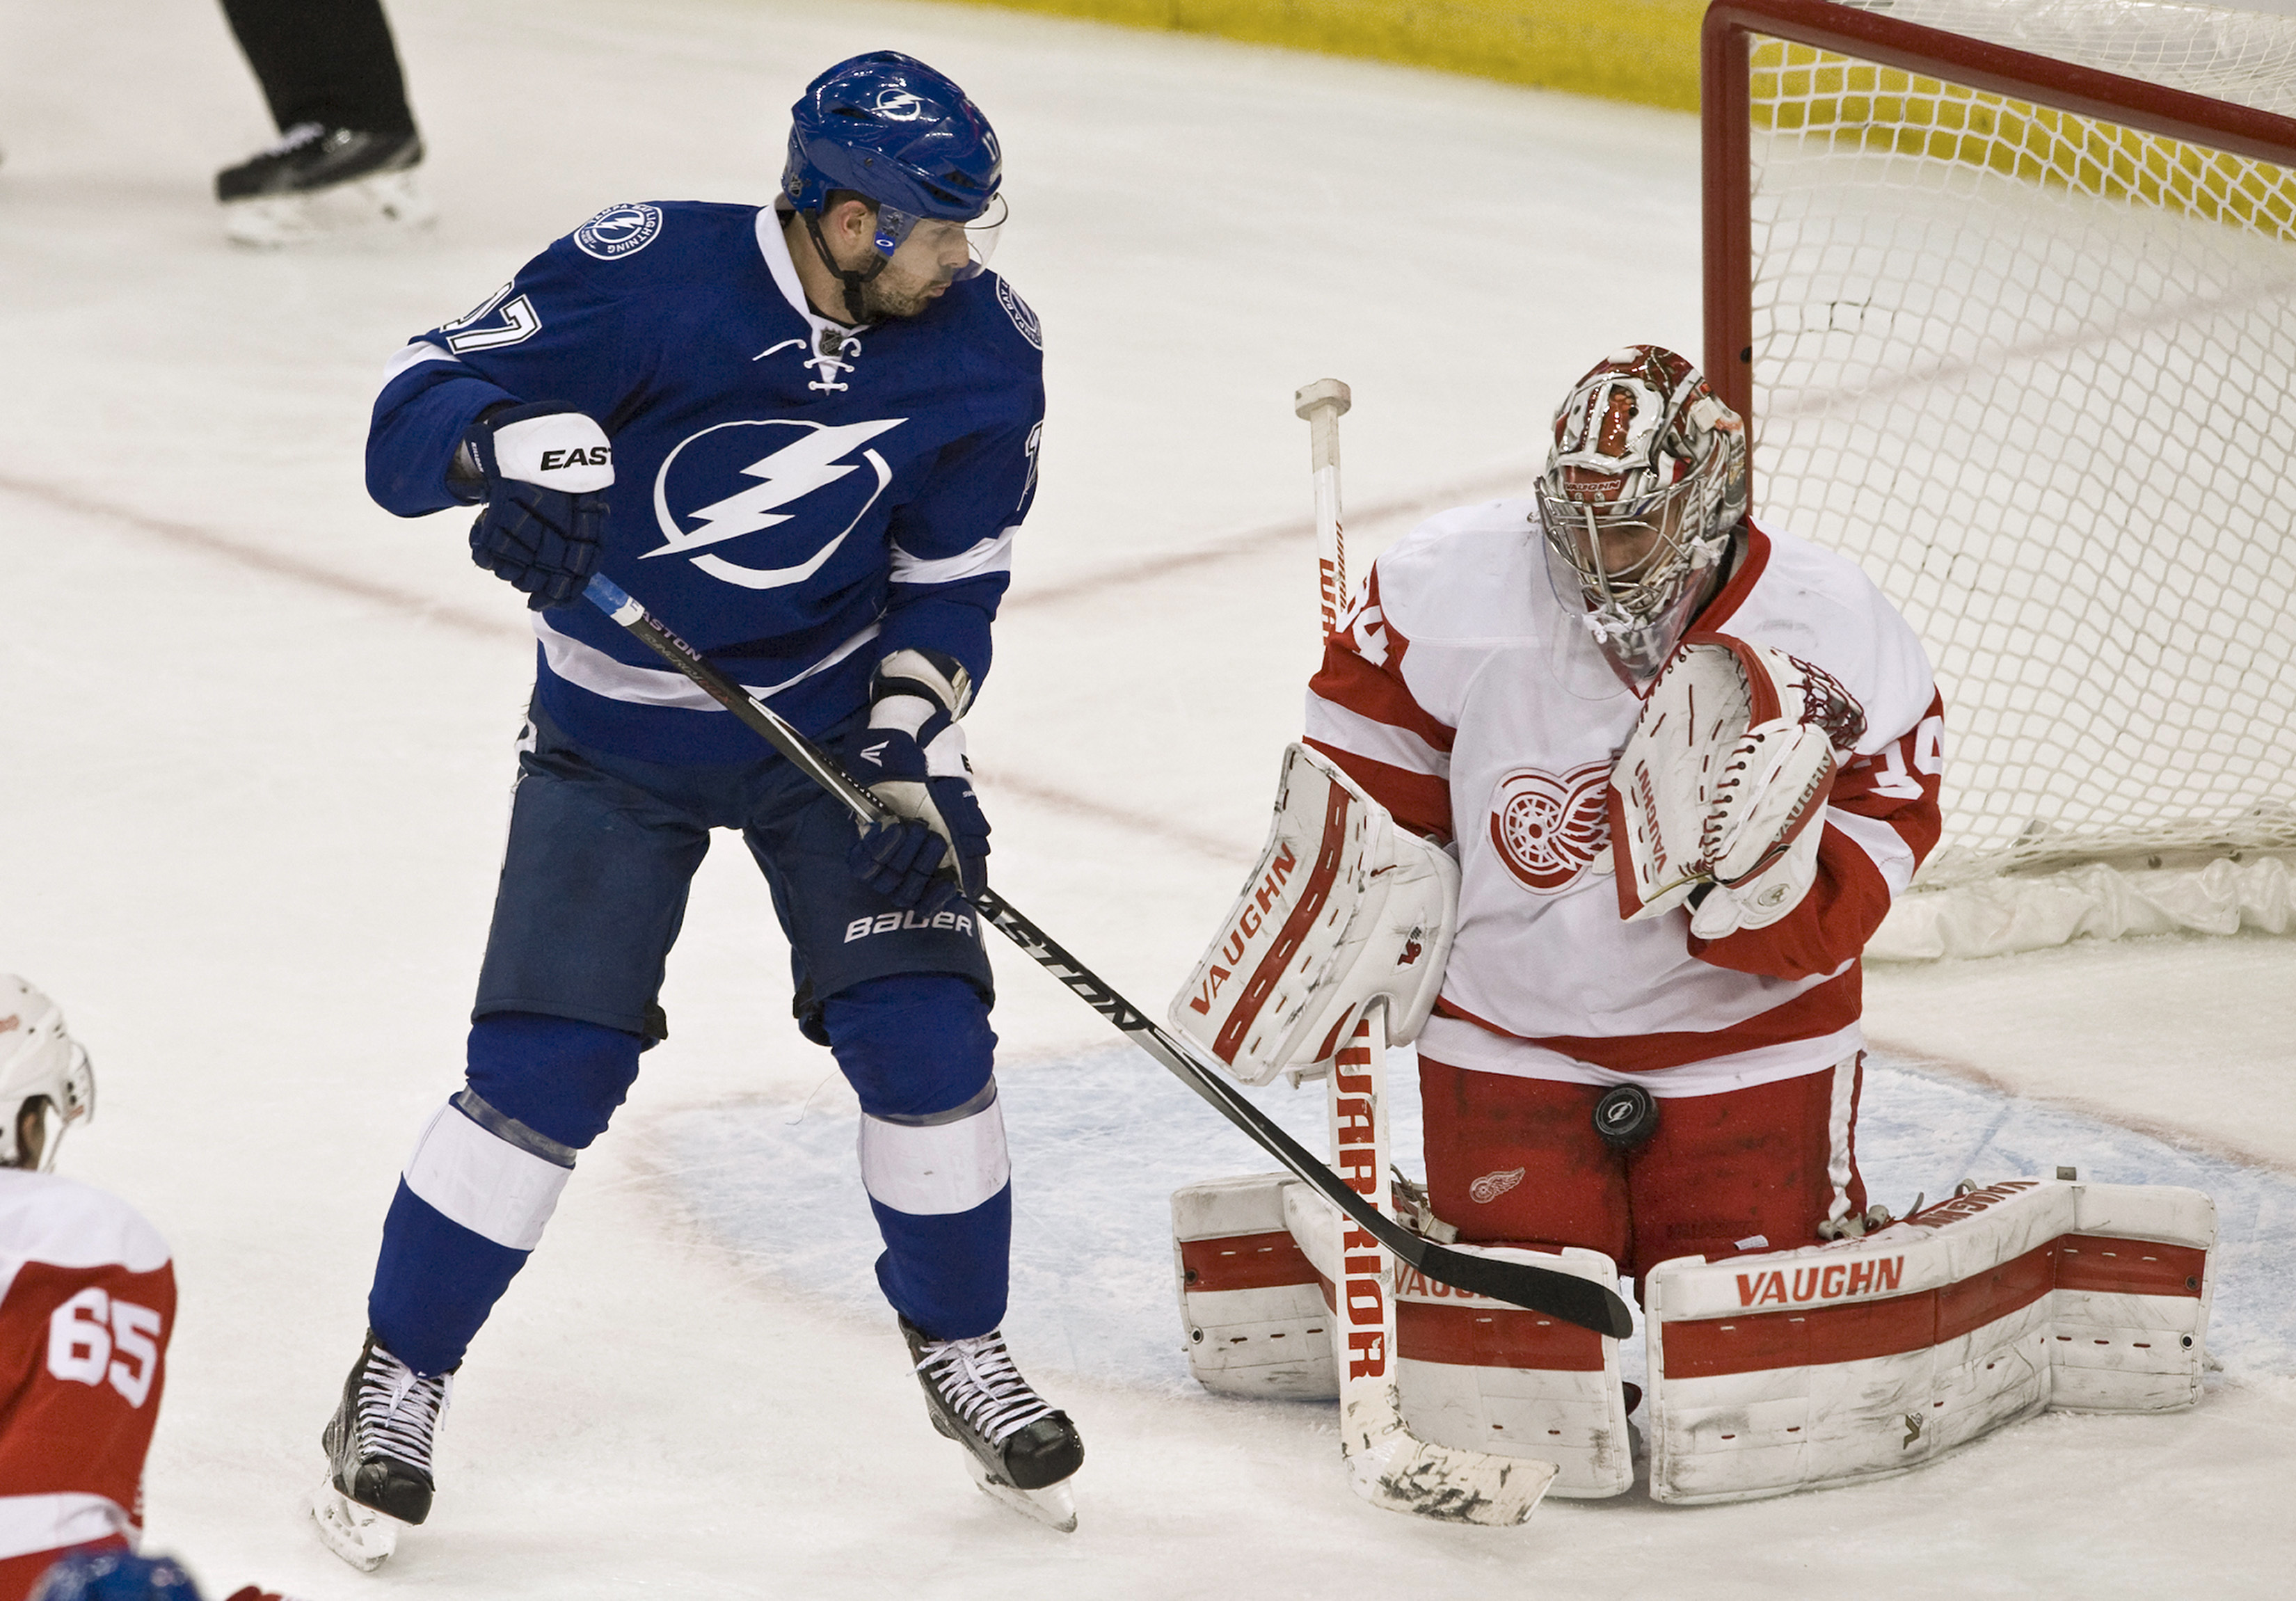 Detroit Red Wings goalie Petr Mrazek (34) stops a shot from Tampa Bay Lightning's Alex Killorn, left, during the second period of an NHL hockey game Tuesday, March 22, 2016, in Tampa, Fla. (AP Photo/Steve Nesius)